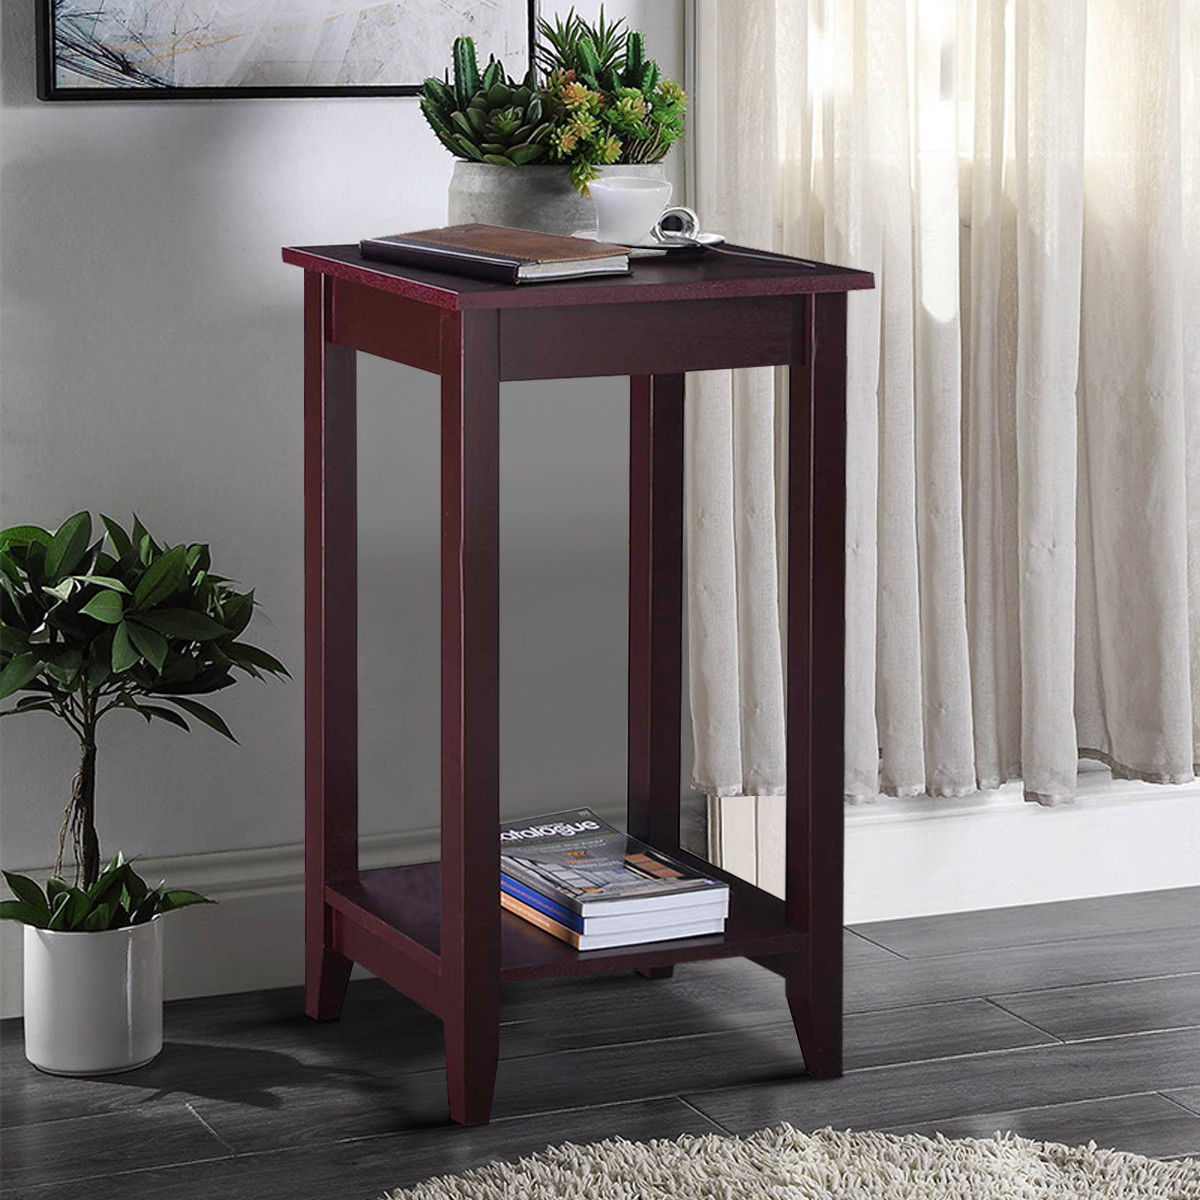 Wood Tall End Coffee Table Nightstand Sofa Side Table Console Storage Shelf Walmart Canada